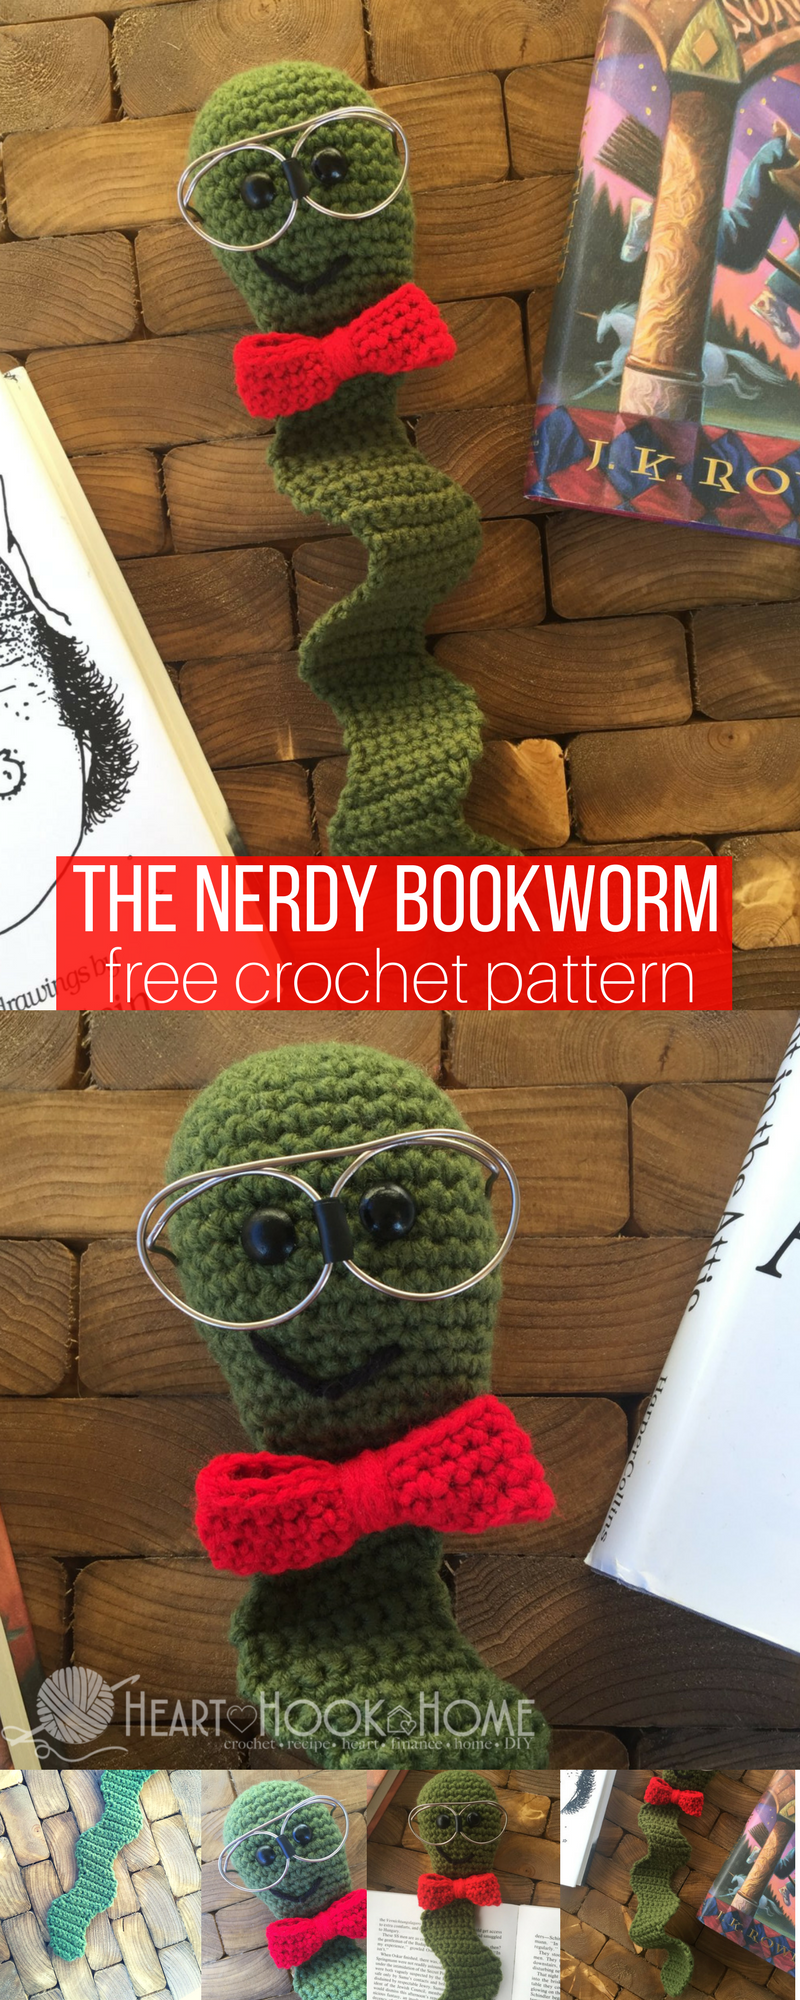 This nerdy bookworm bookmark is simply adorable free crochet the nerdy bookworm bookmark free crochet pattern bankloansurffo Gallery